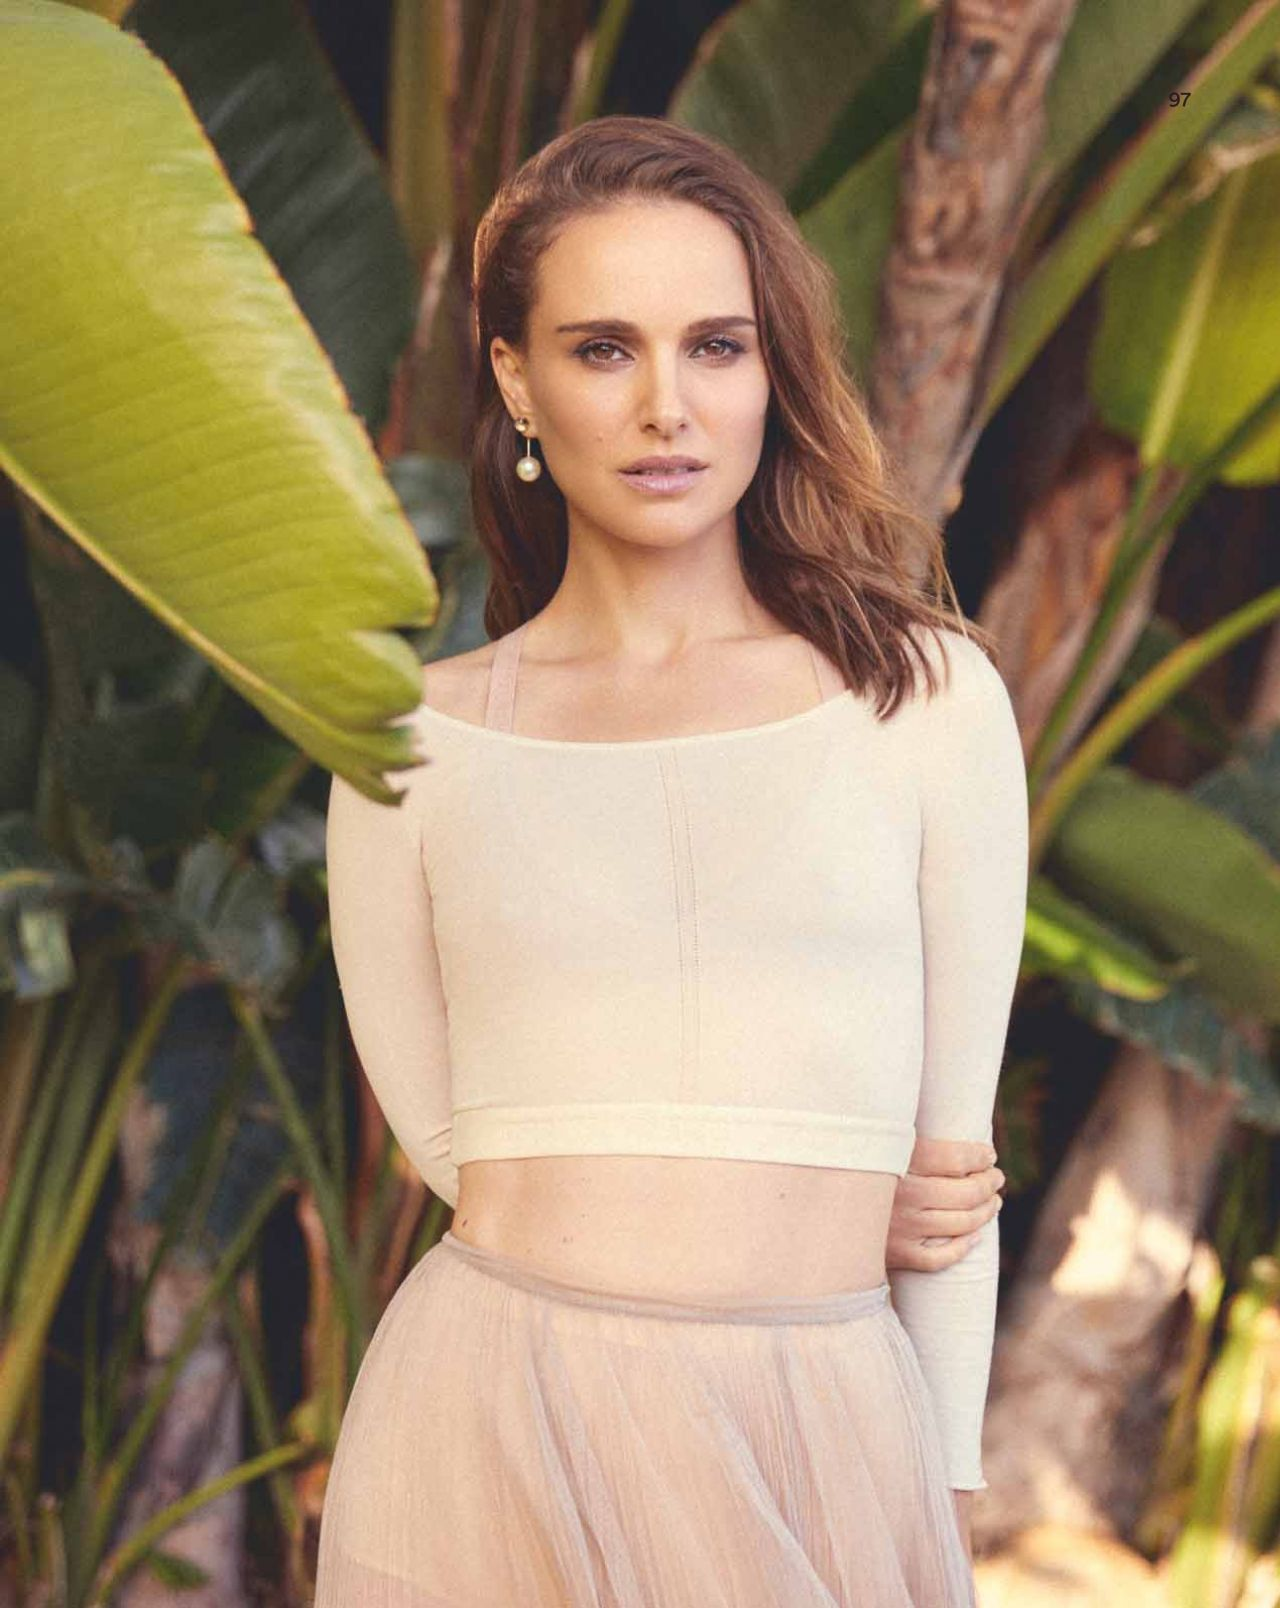 Natalie Portman photo #892267